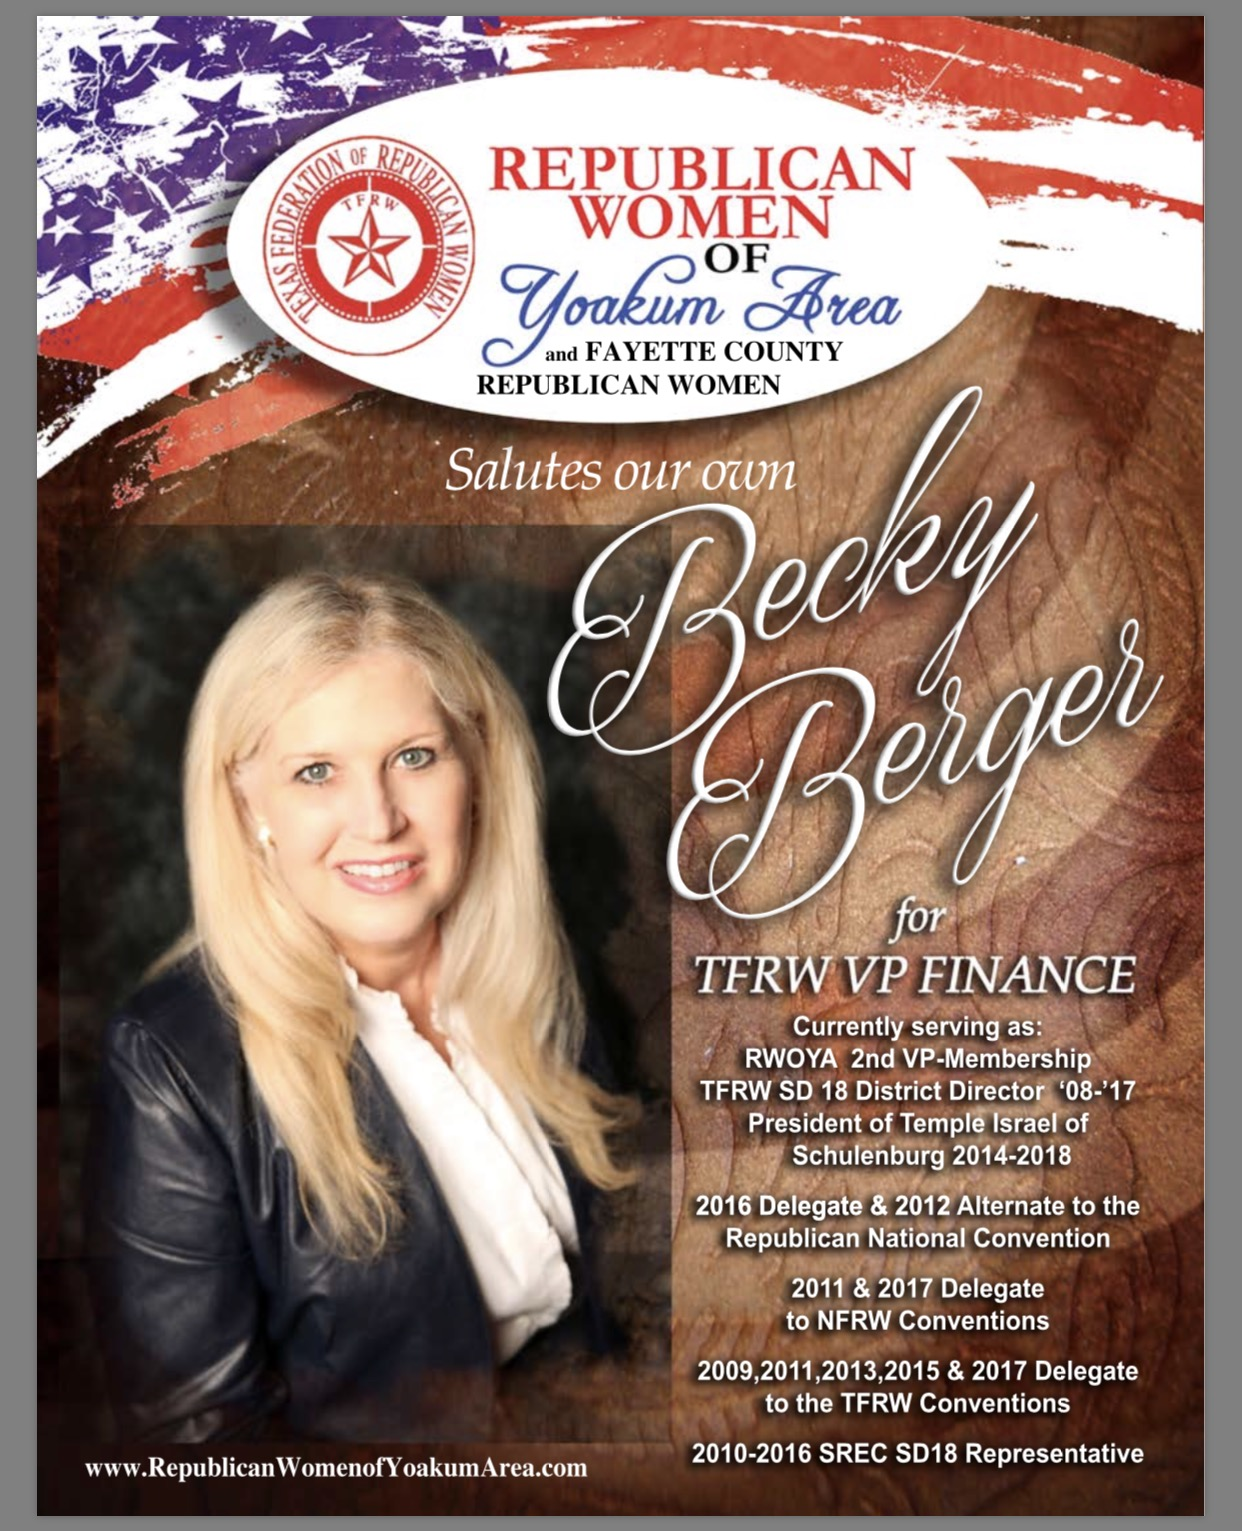 Becky Berger VP Finance TFRW jpg